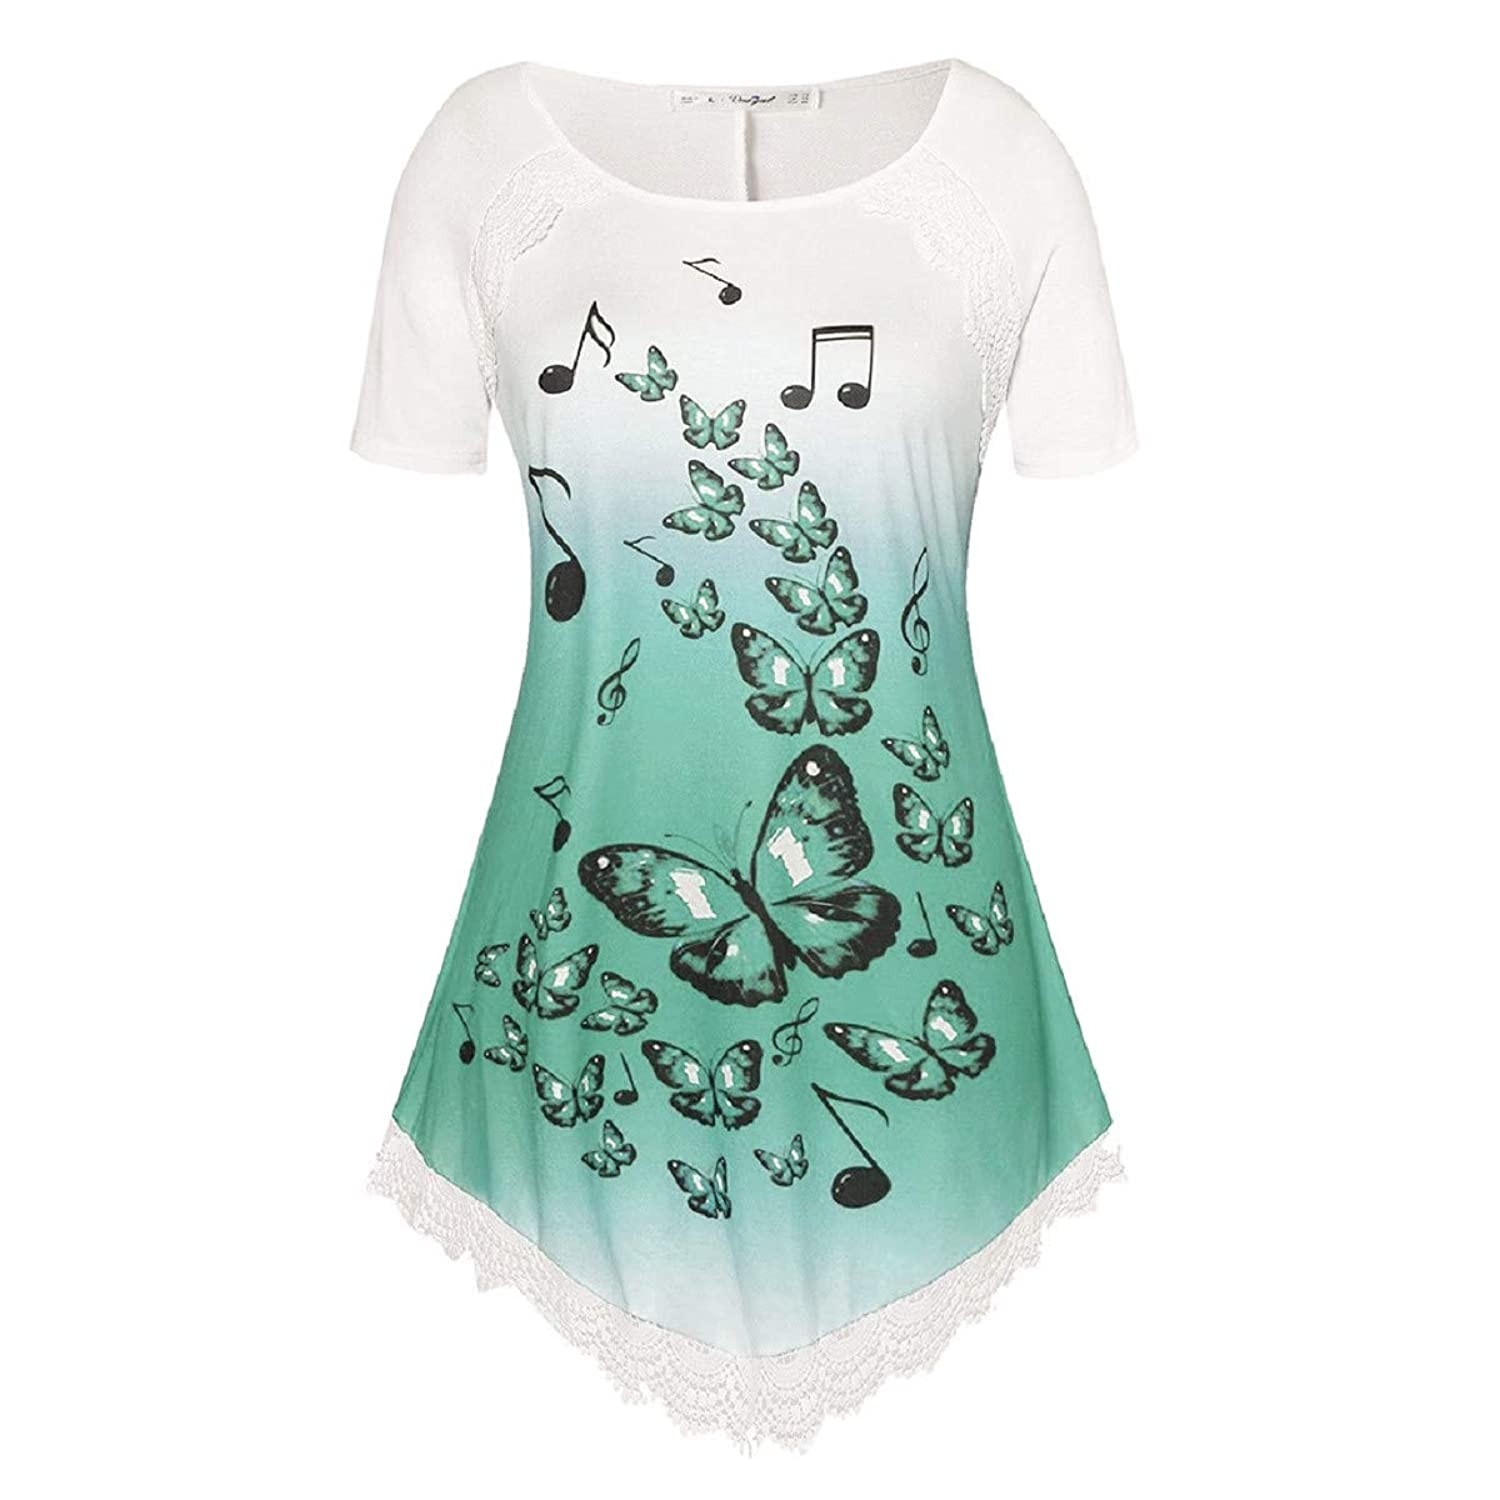 Womens Short Sleeve Fzitimx Summer New Shirts Large Size Gradient Musical Notes Butterfly Print T-Shirt Bat Wing Blouse Casual Tee Shirts pdkjne6650679